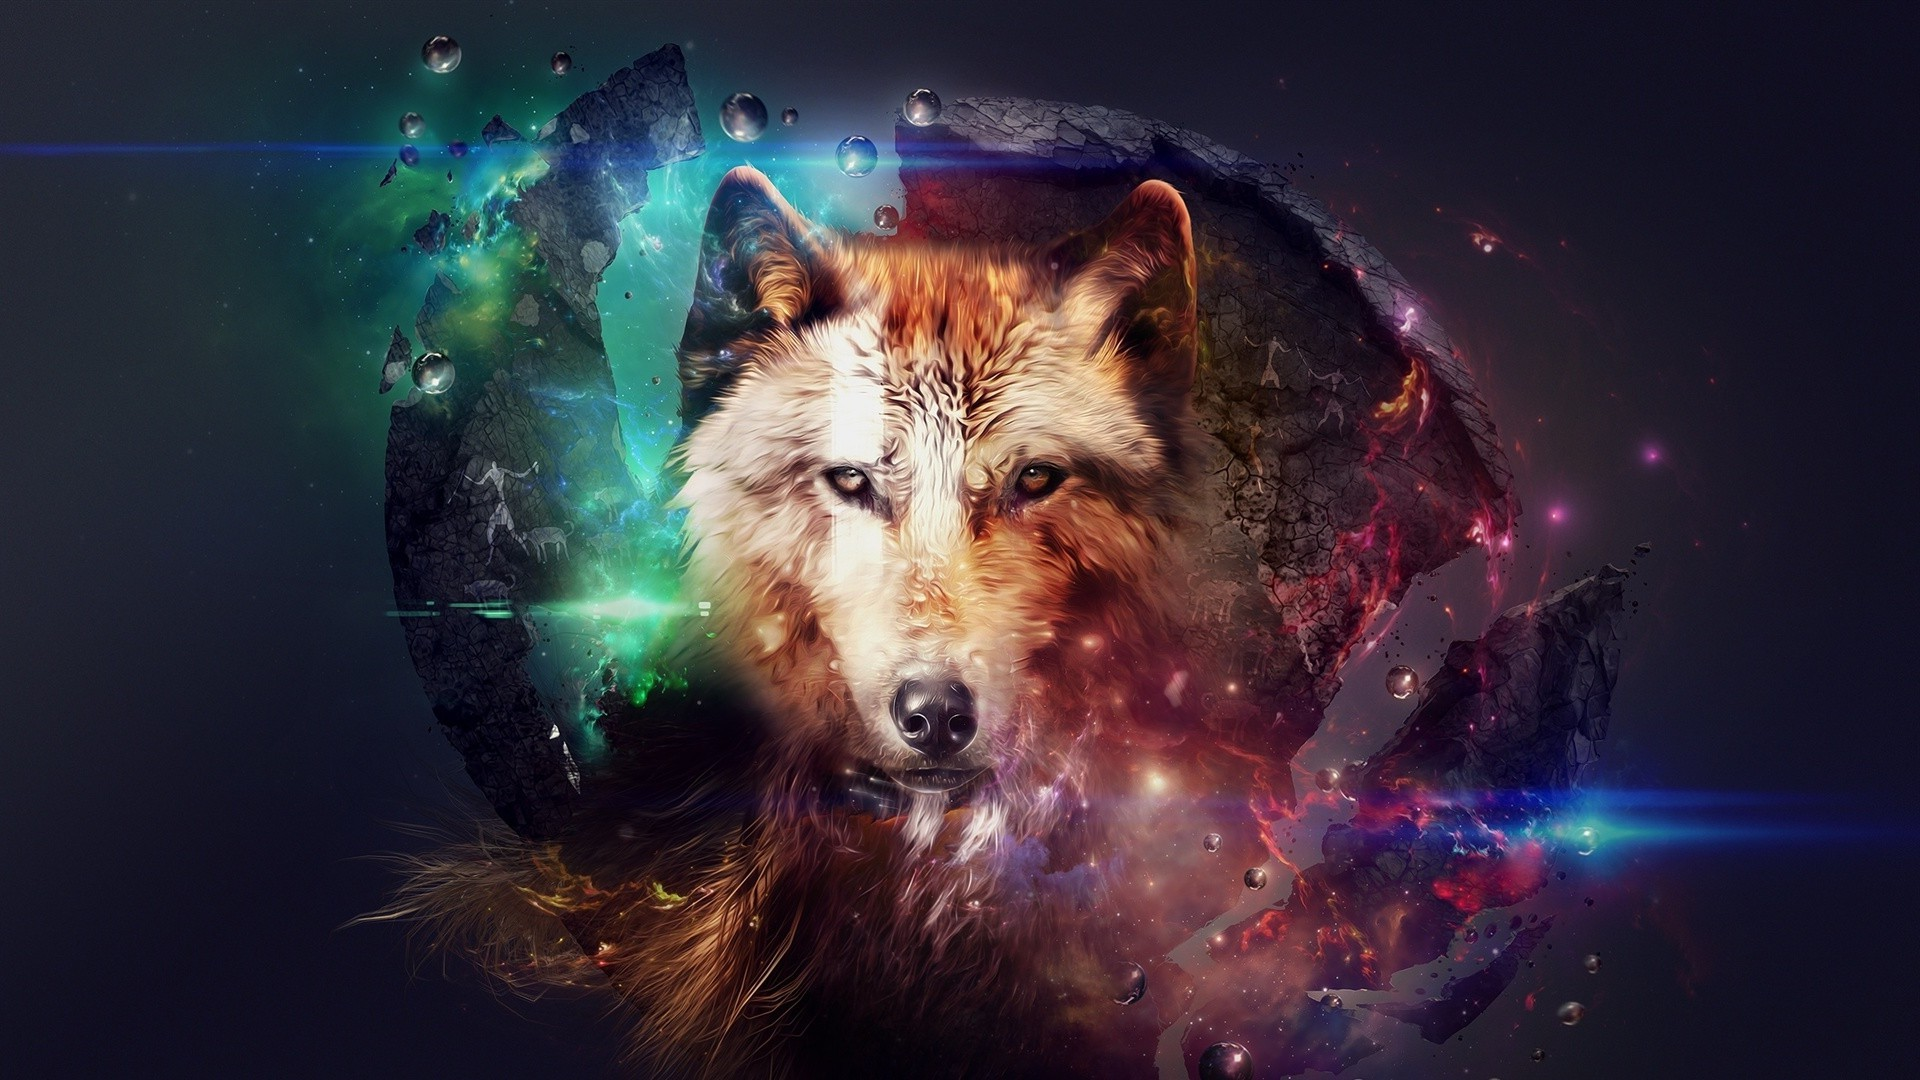 Neon Wolf Android Wallpapers For Free